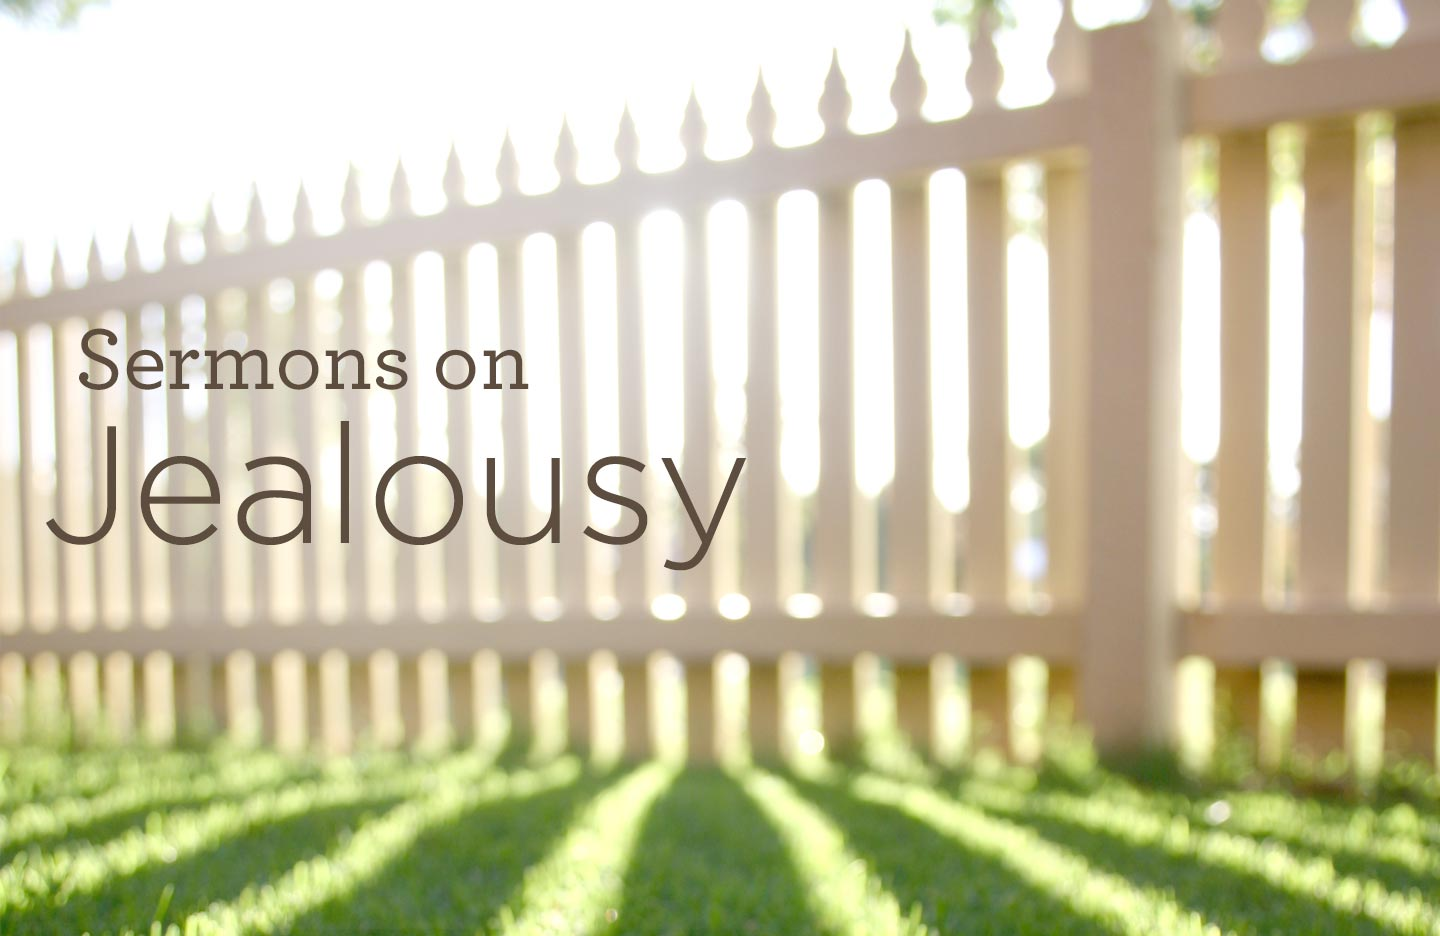 thumbnail image for Sermons on Jealousy